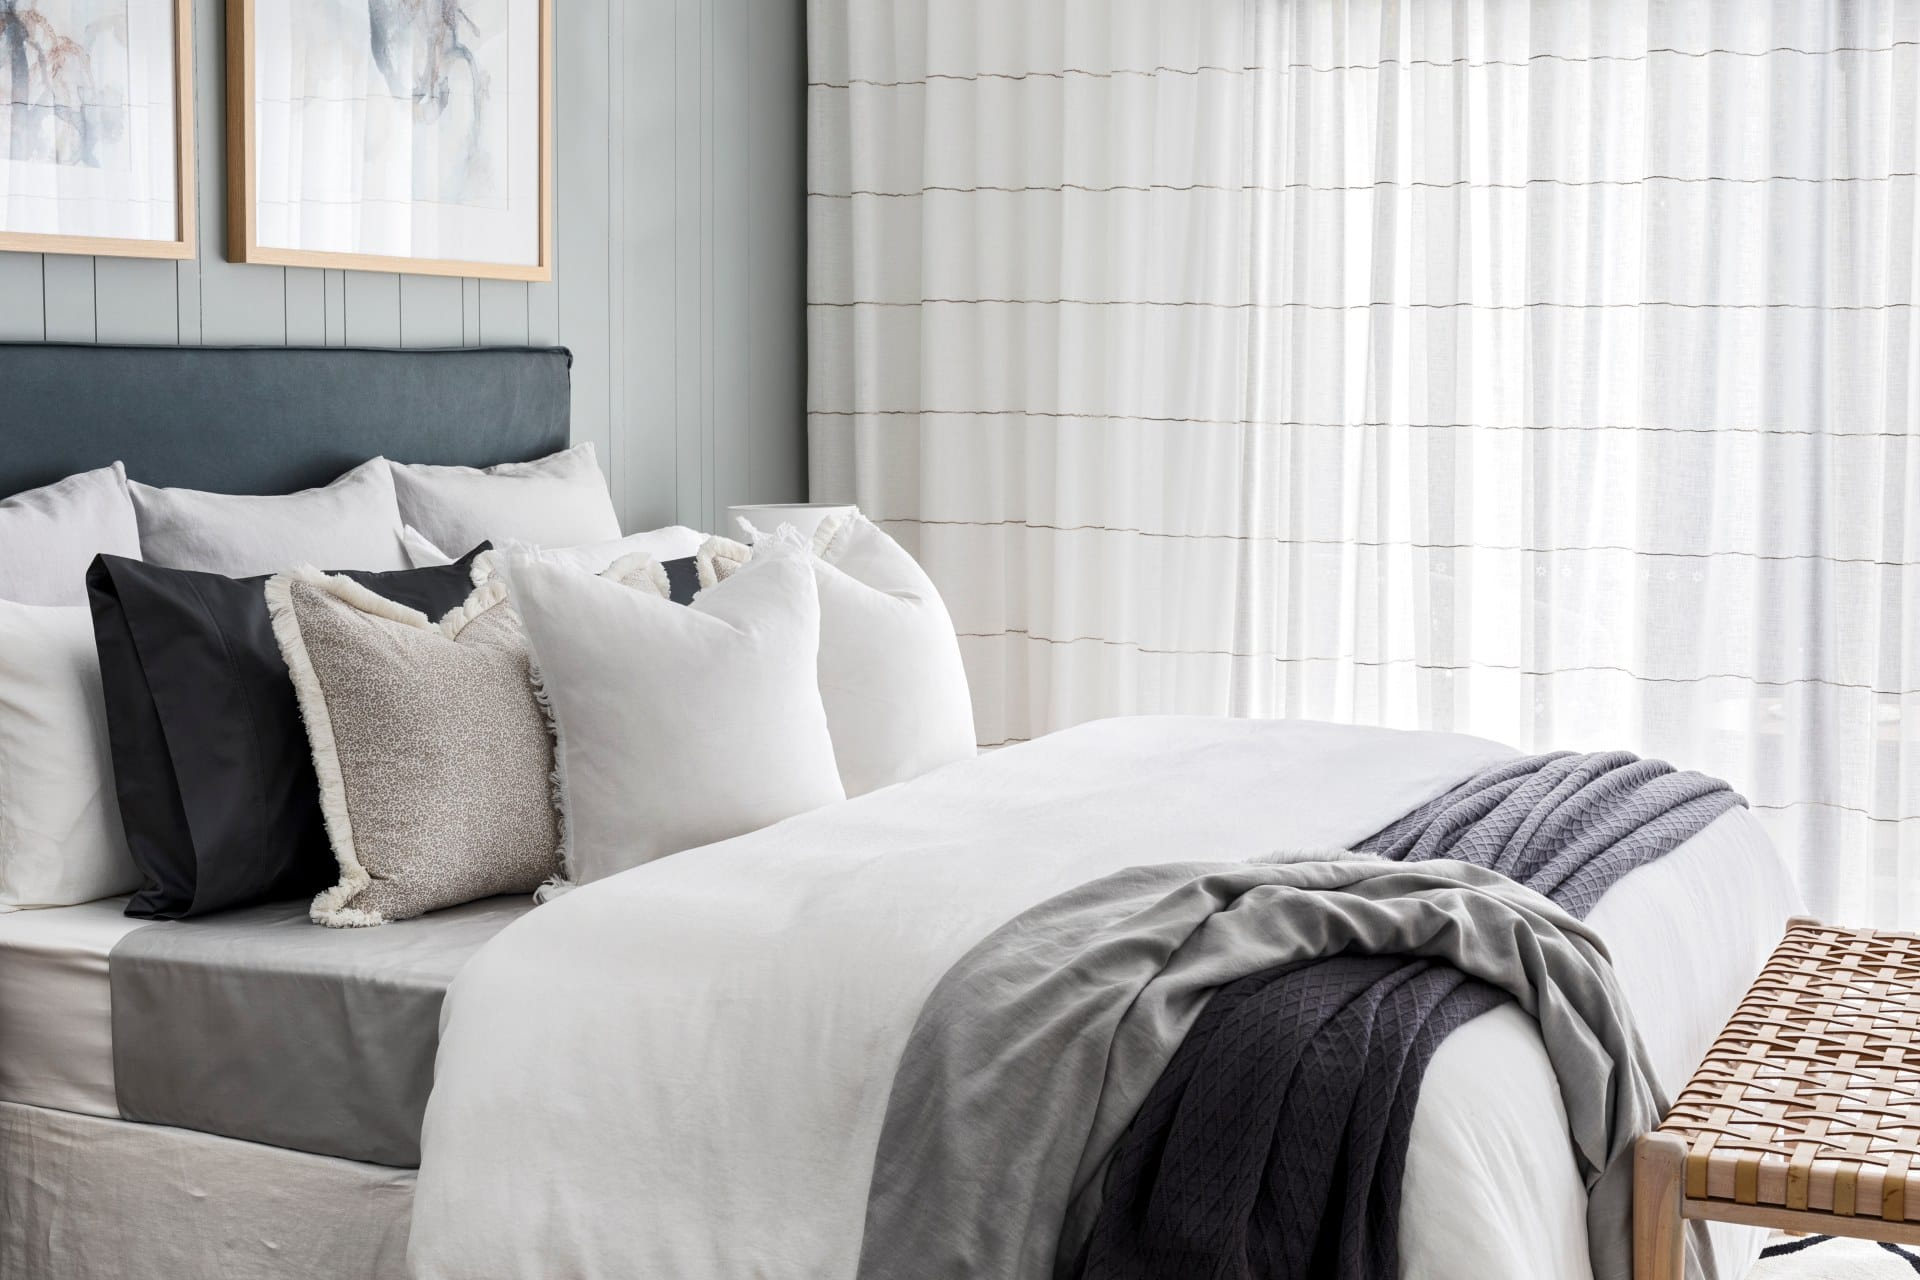 neutral bed styling with lots of pillows in bedroom with sheer curtains